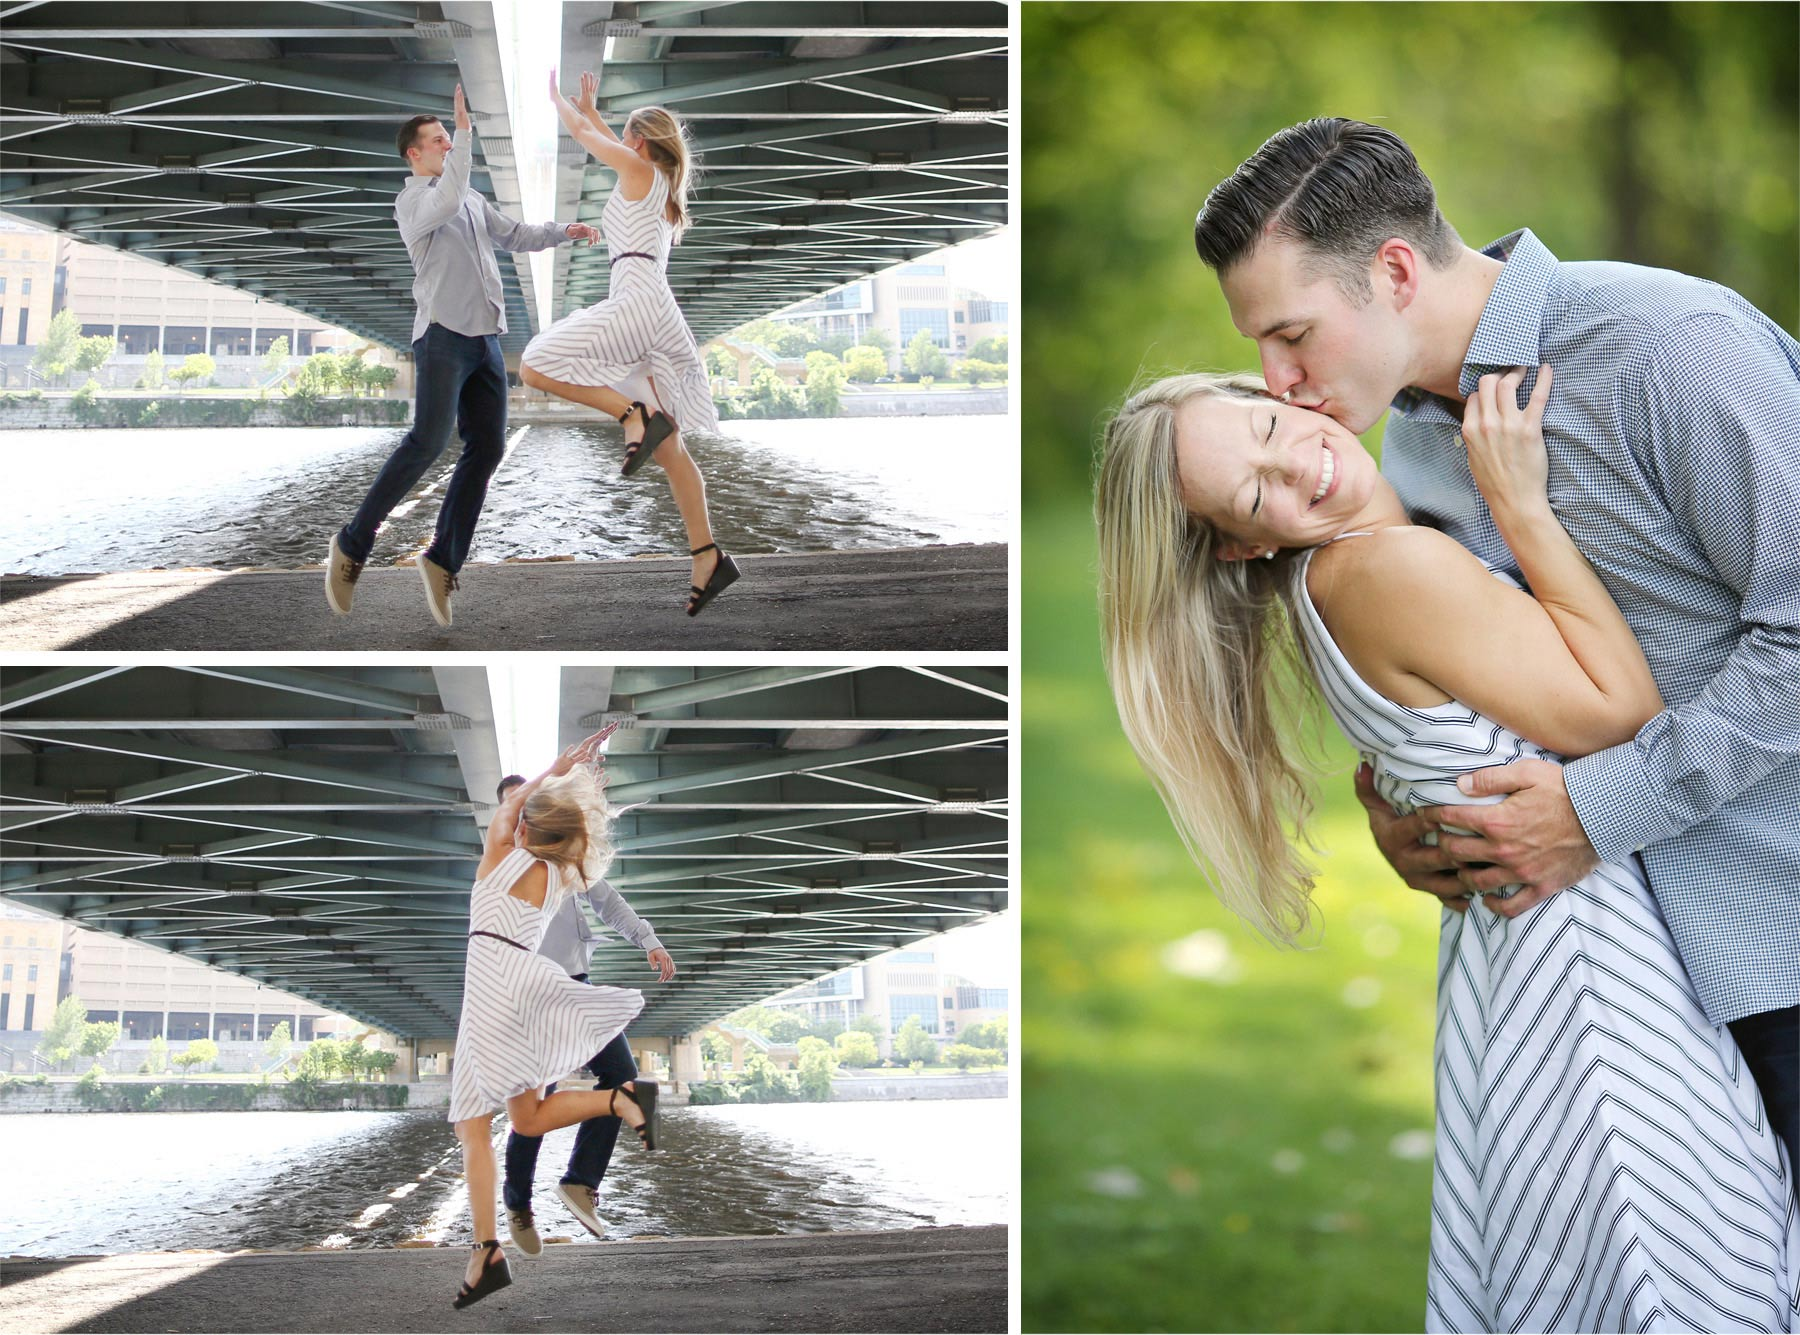 03-Minneapolis-Minnesota-Engagement-Photographer-by-Andrew-Vick-Photography-Summer-Mississippi-River-Hennepin-Avenue-Bridge-Jumping-High-Five-Kiss-Tina-and-Kevin.jpg